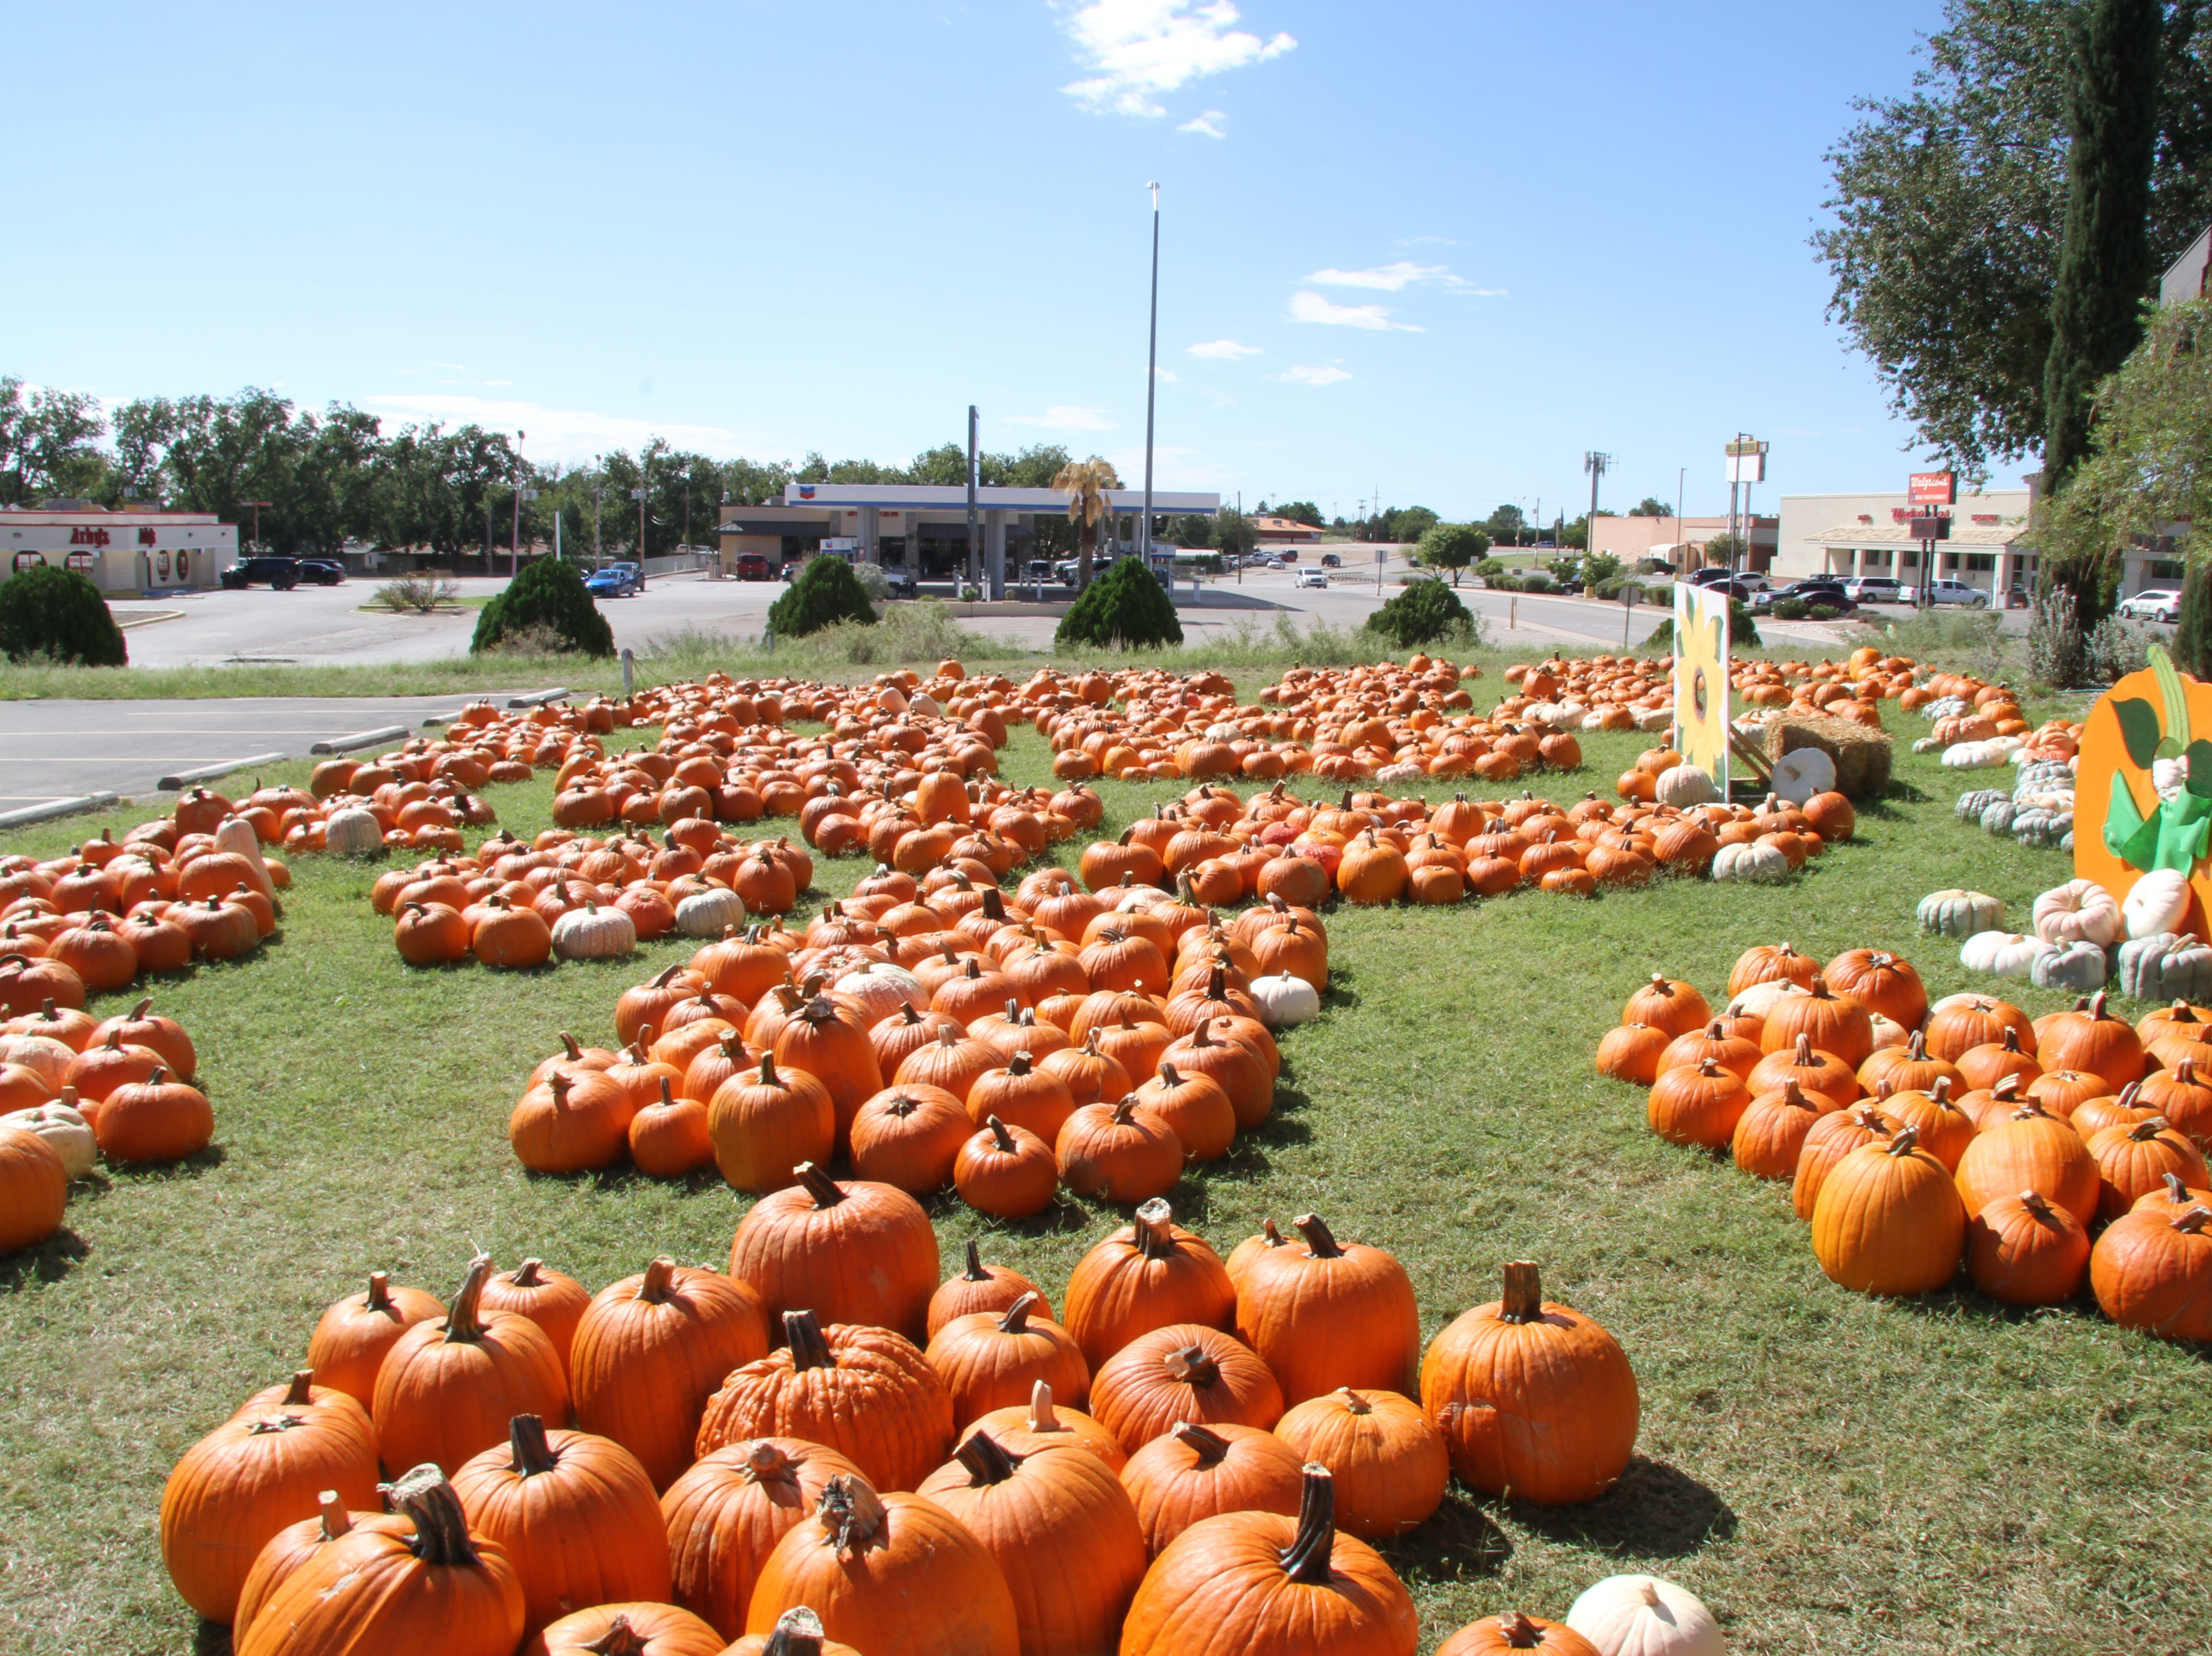 St. Peter Lutheran Church is covered with pumpkins from now until Oct. 31. This year's proceeds go to Packs for Hunger and the Children's Advocacy Center-Buddies Program. The church is located at 1302 W. Pierce.